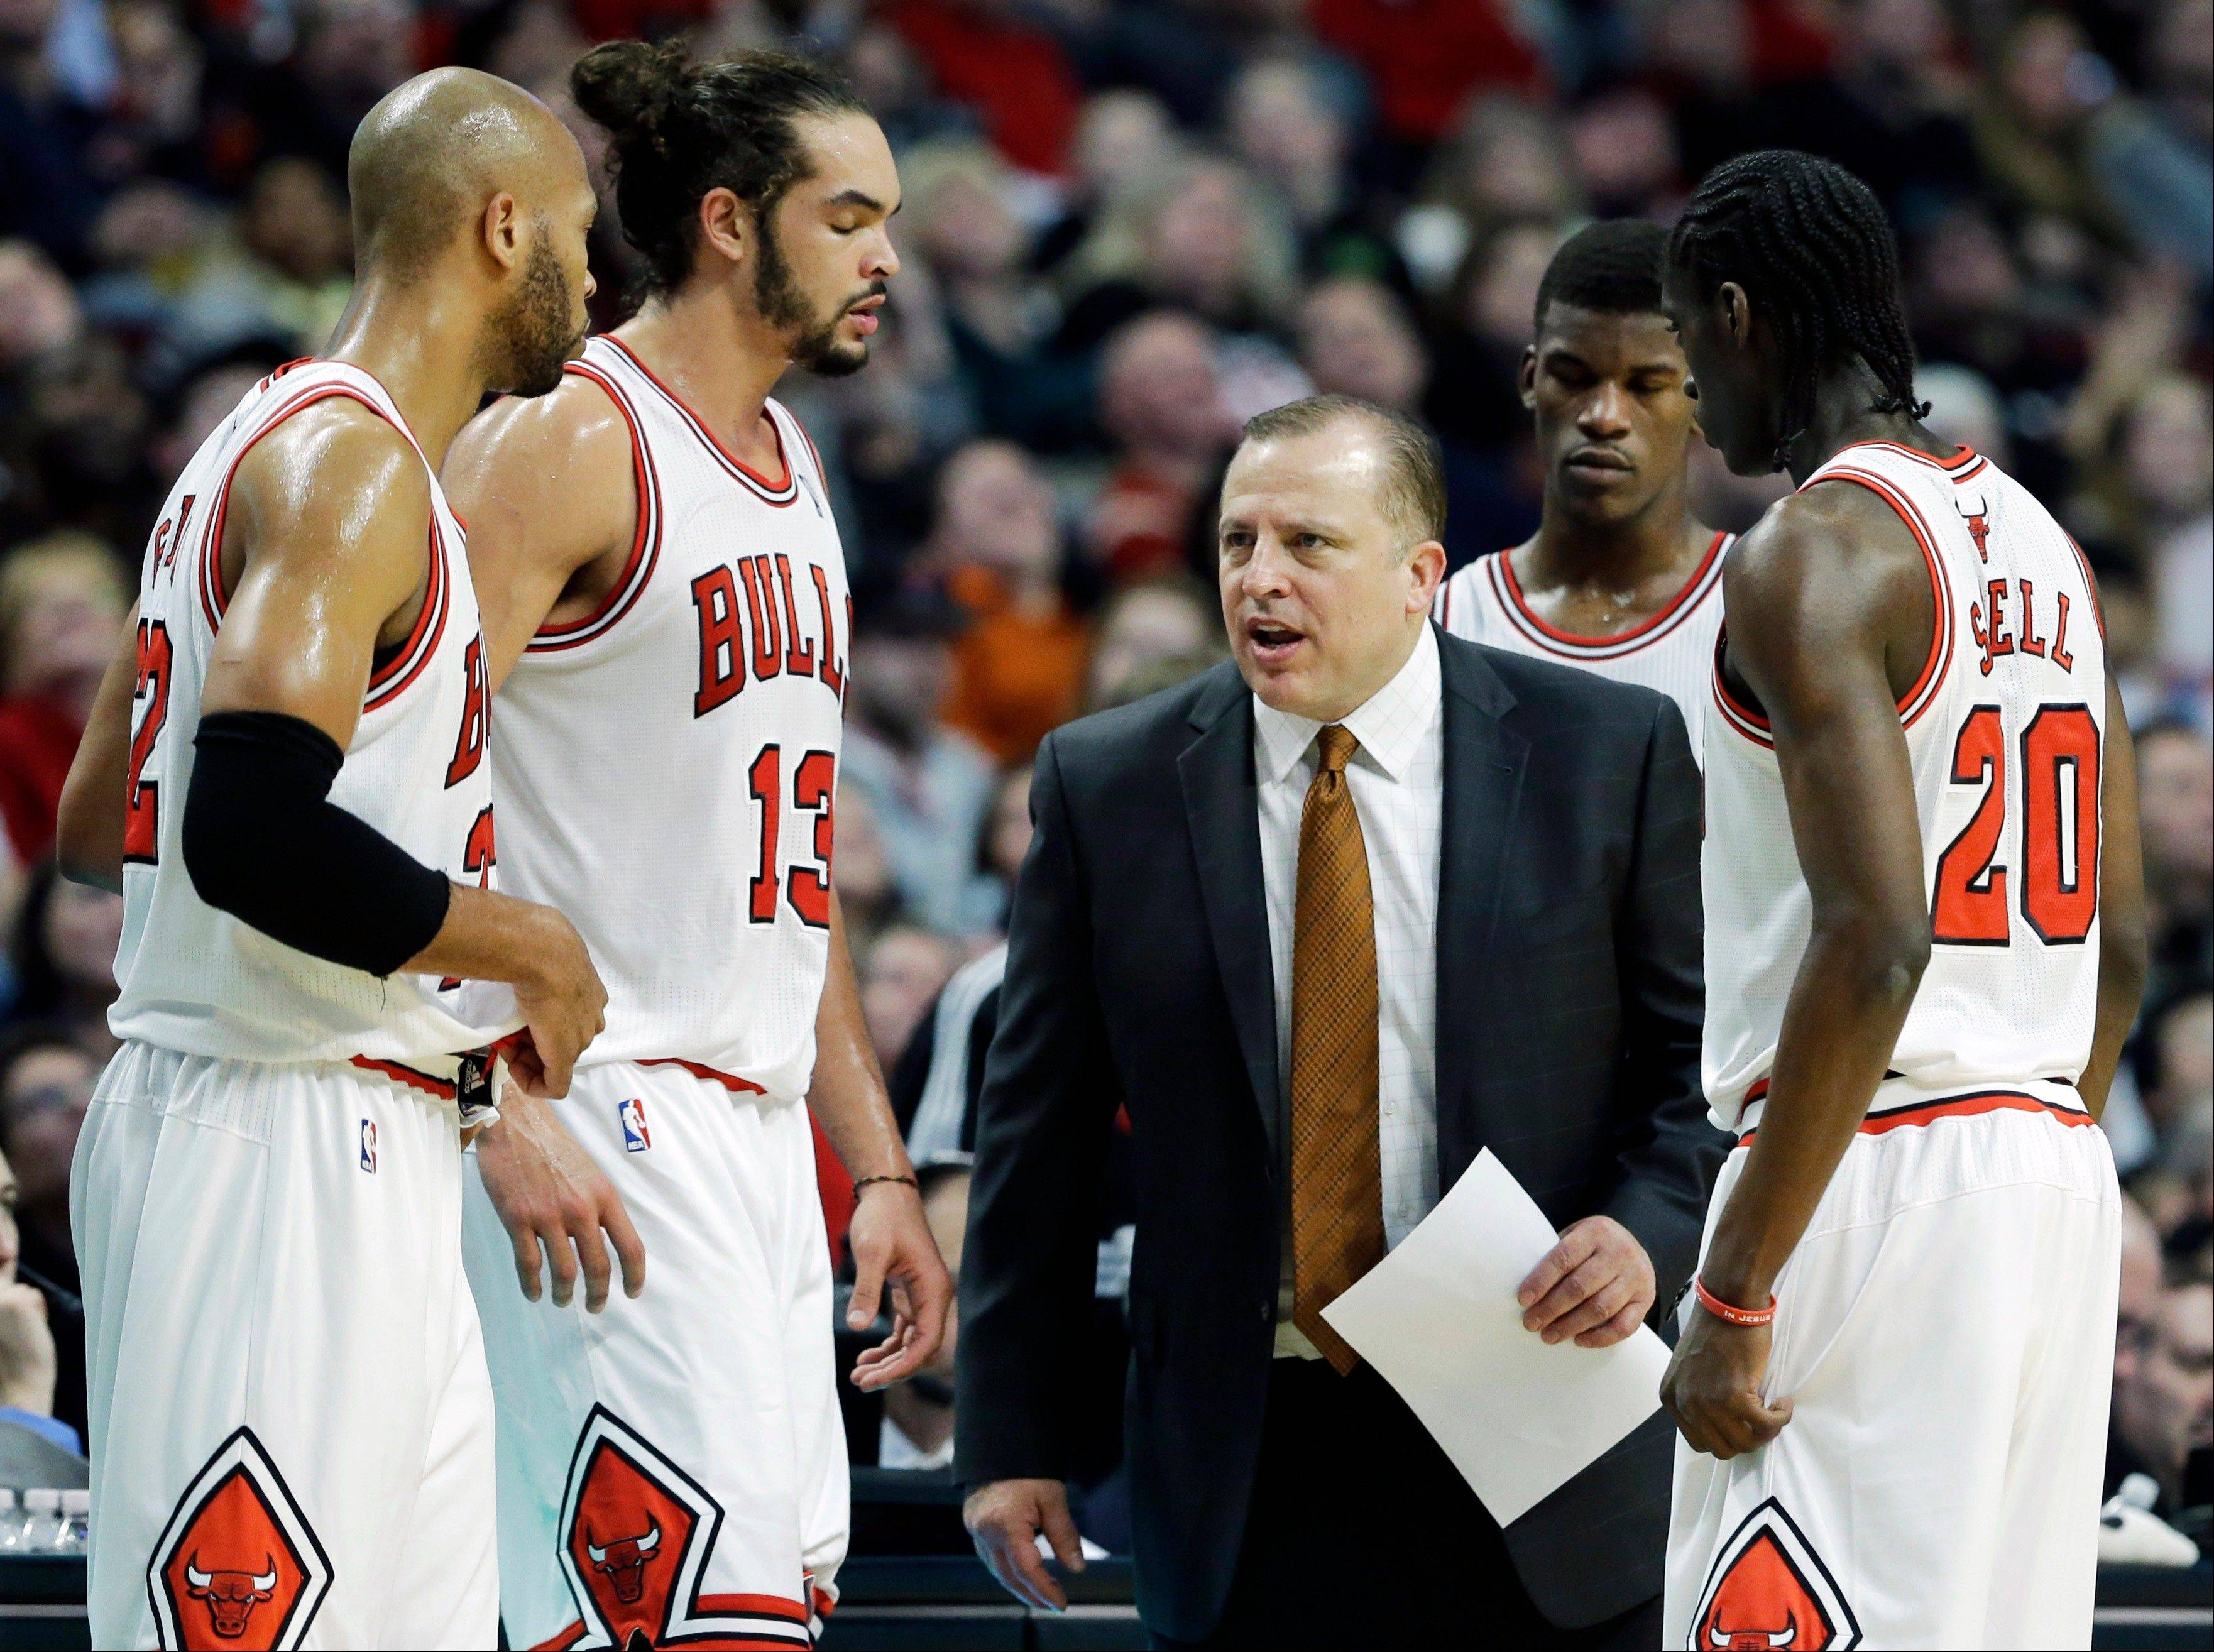 Bulls head coach Tom Thibodeau talks to his team during the second half of an NBA basketball game against the Dallas Mavericks in Chicago on Saturday, Dec. 28, 2013. The Mavericks won 105-83.